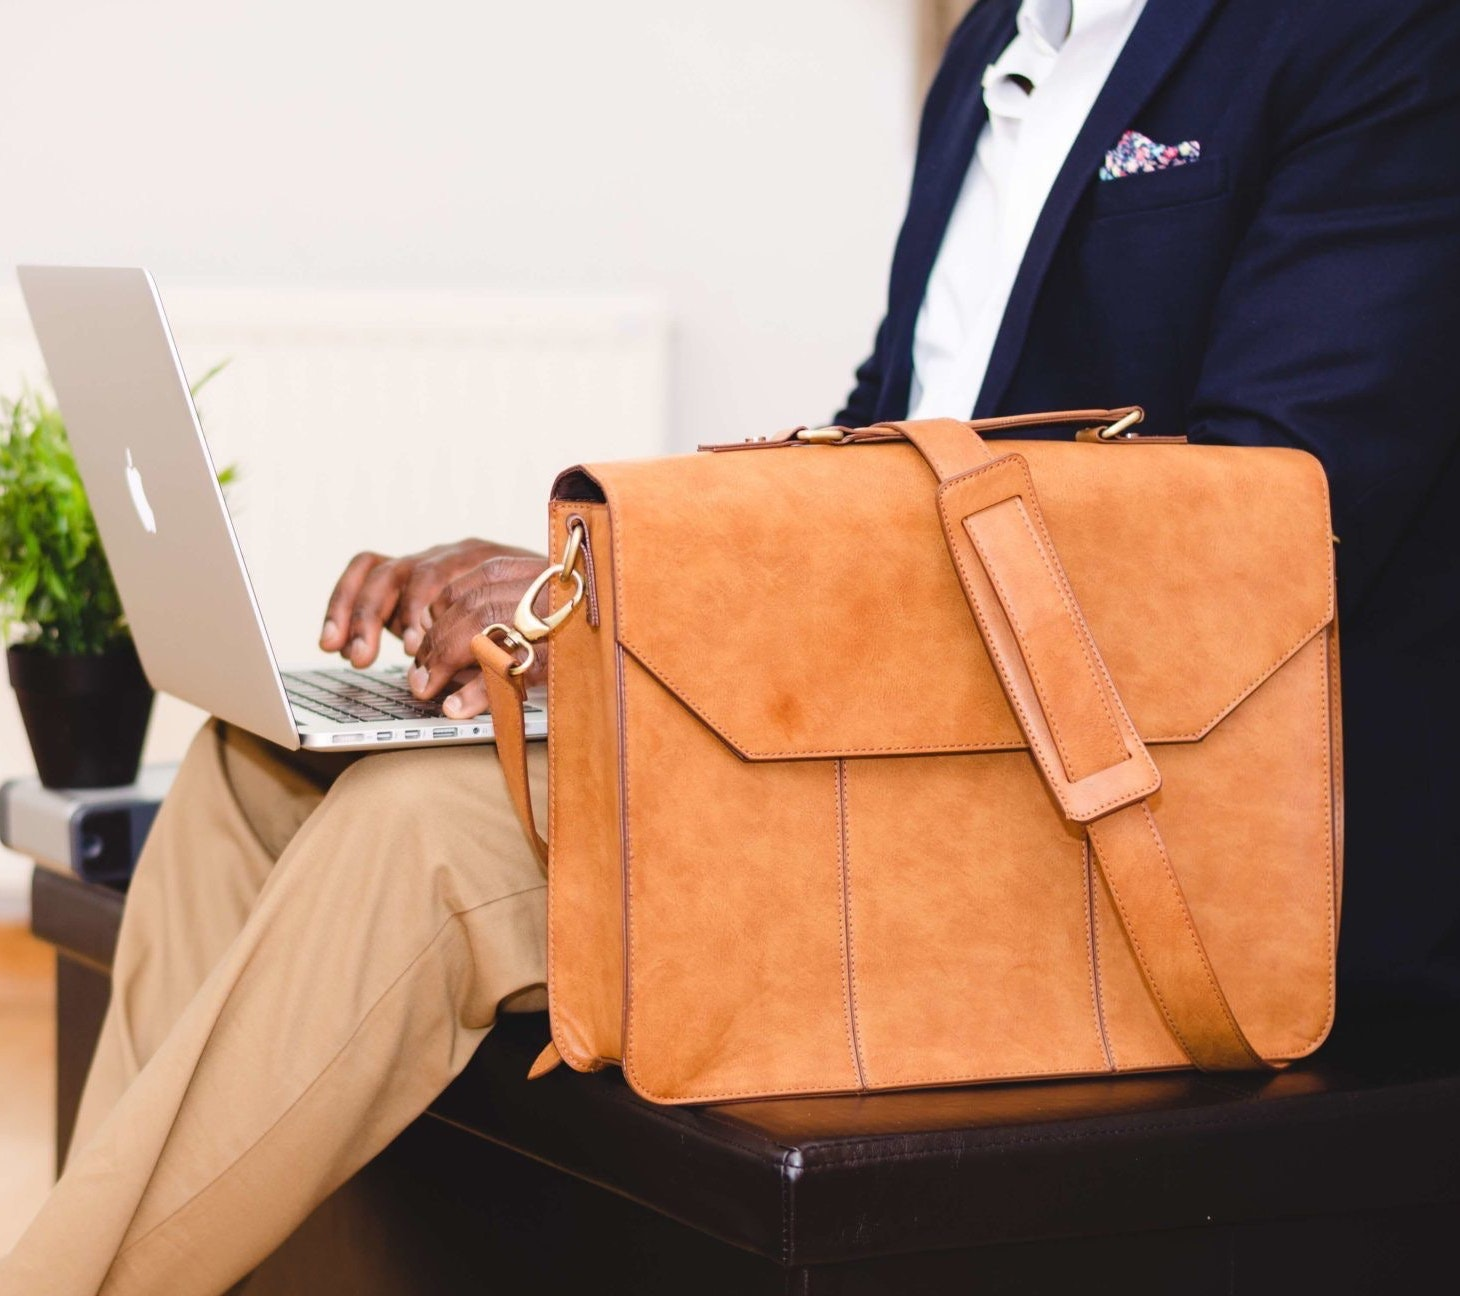 person-wearing-blue-suit-beside-crossbody-bag-and-using-936081